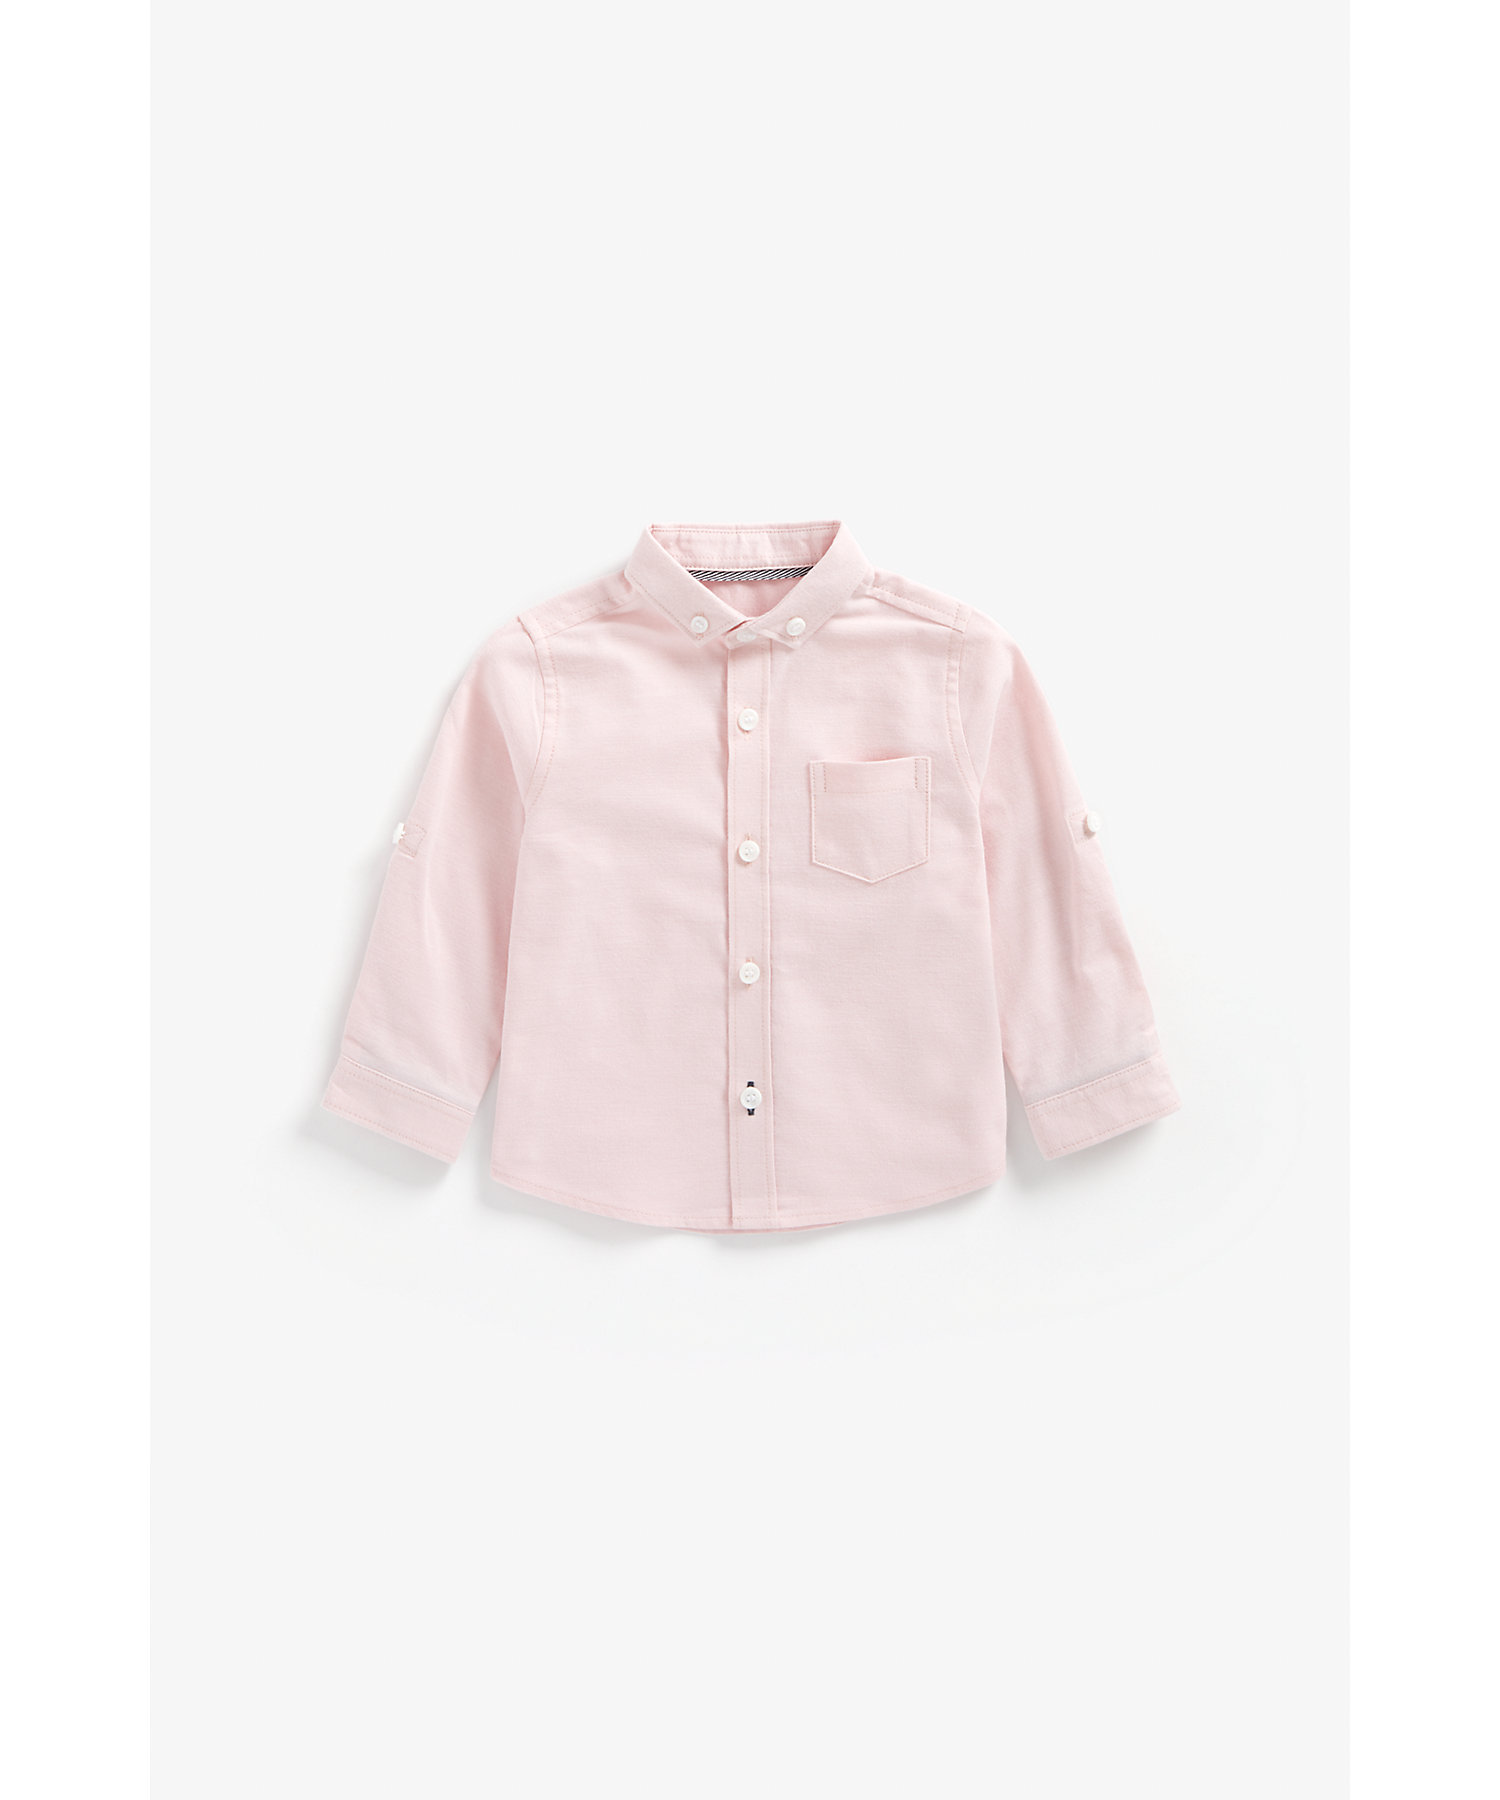 Mothercare | Boys Full Sleeves Oxford Shirt - Pink